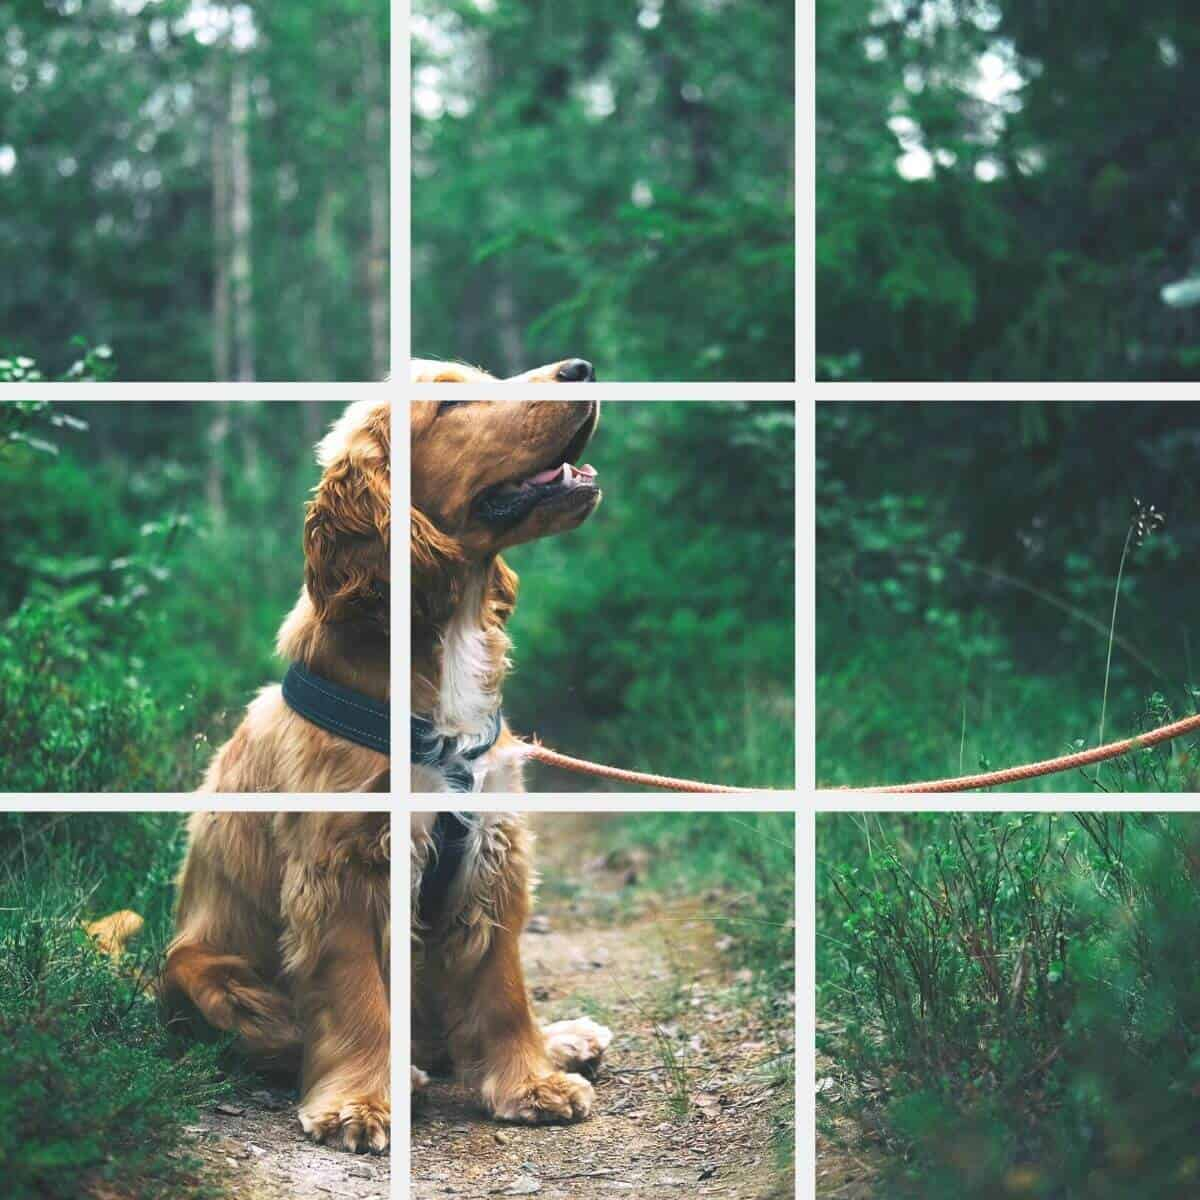 Rule of thirds example with a dog in the forest.